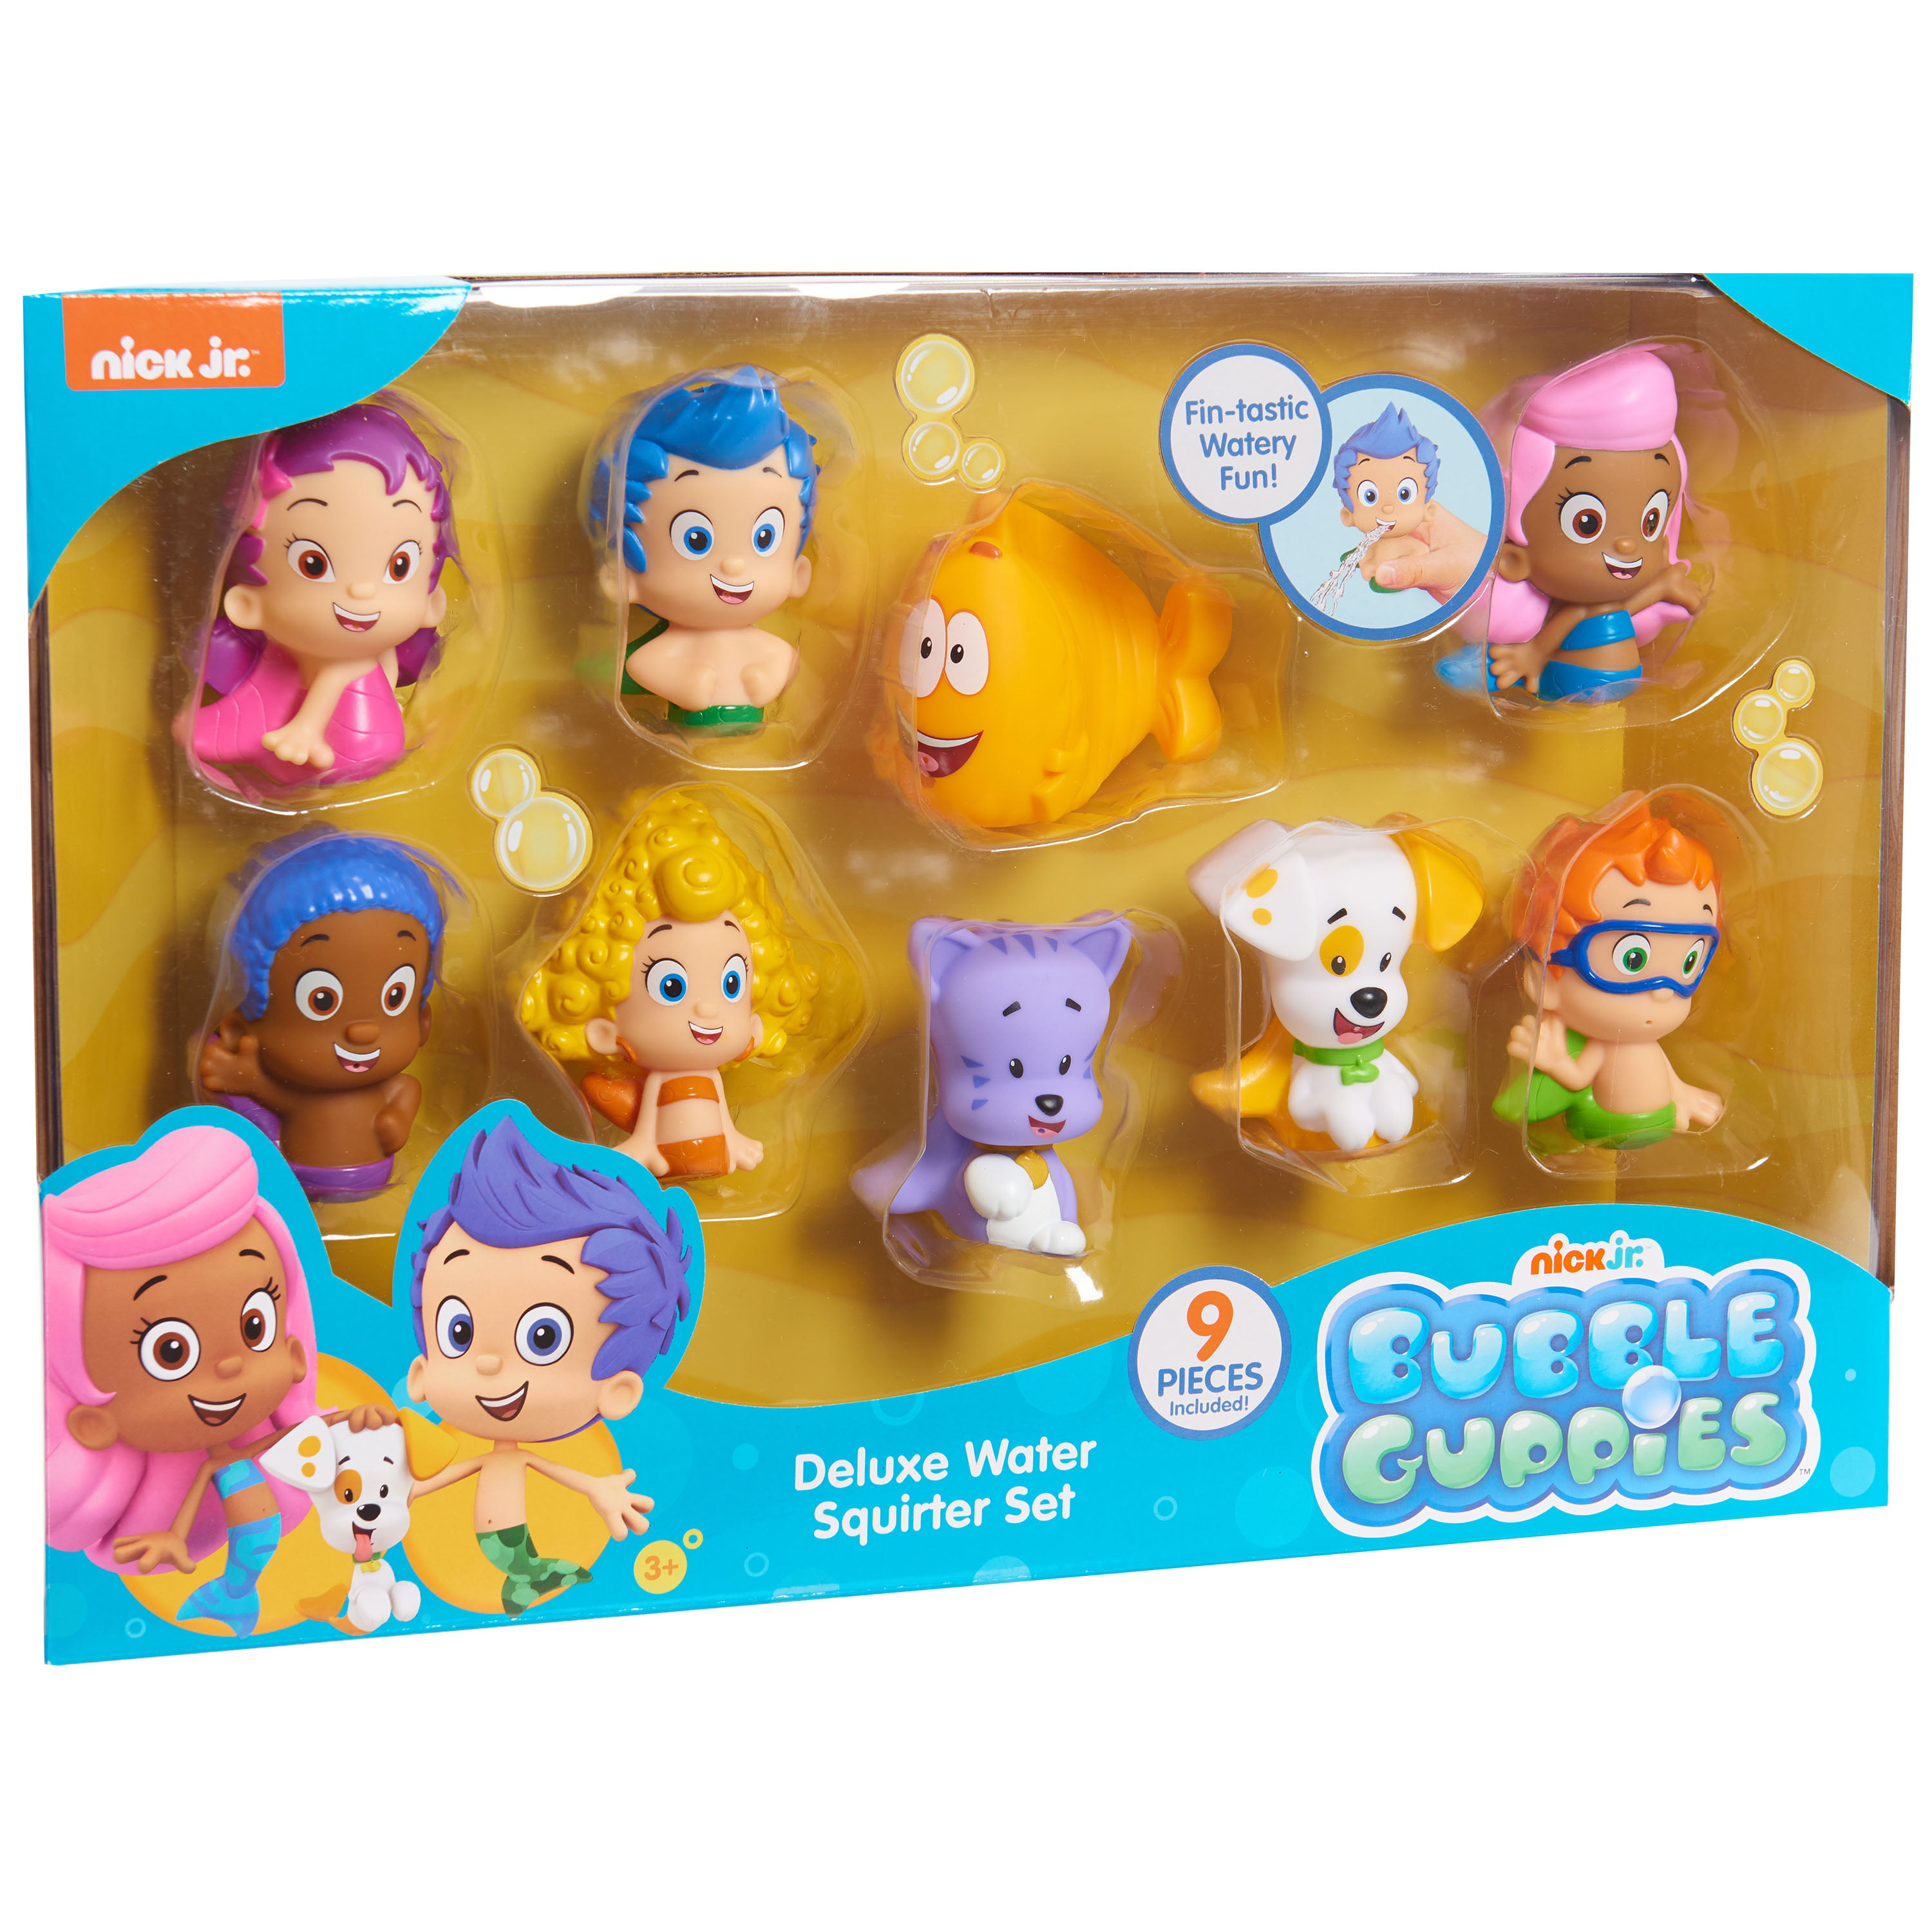 Bubble Guppies Bath Squirters Deluxe Set - 9 Bath Squirters Included